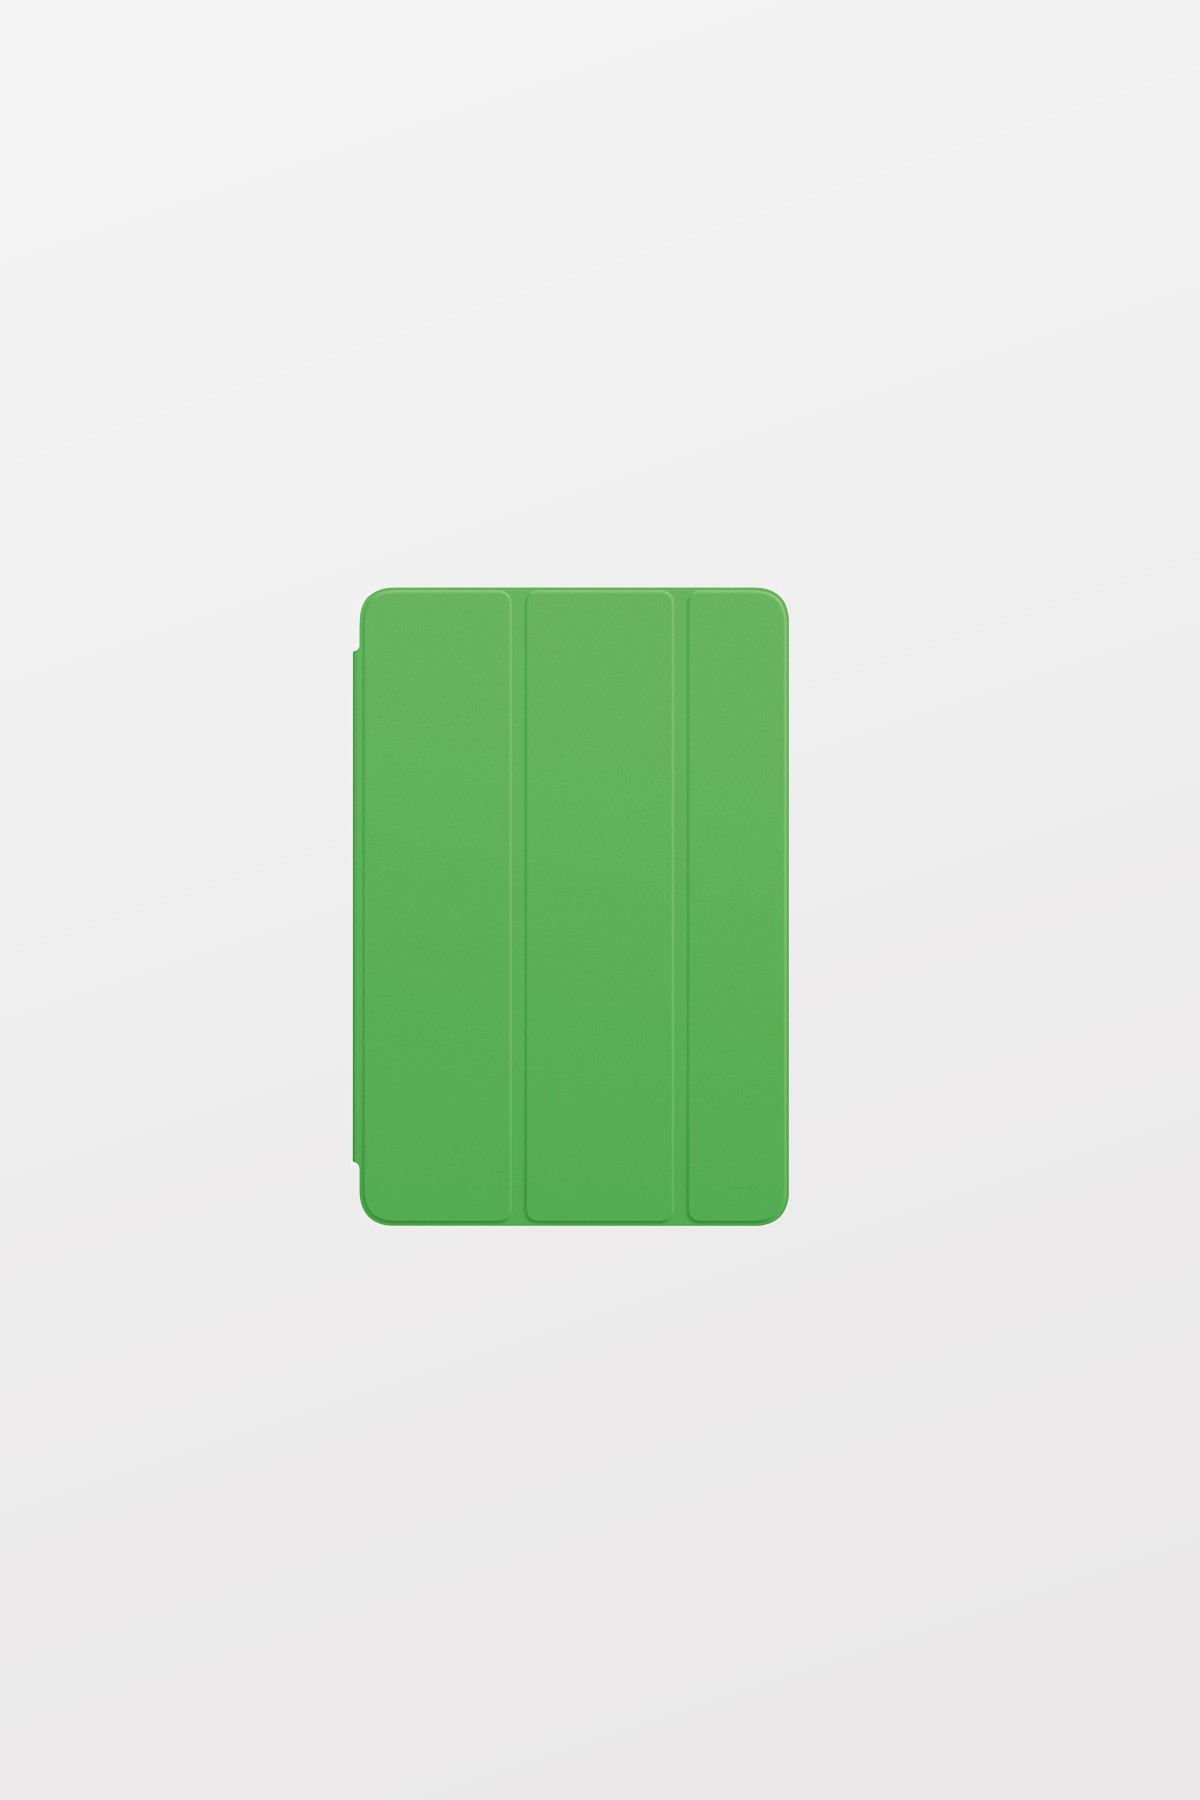 Apple iPad mini with Retina Display Smart Cover - Green